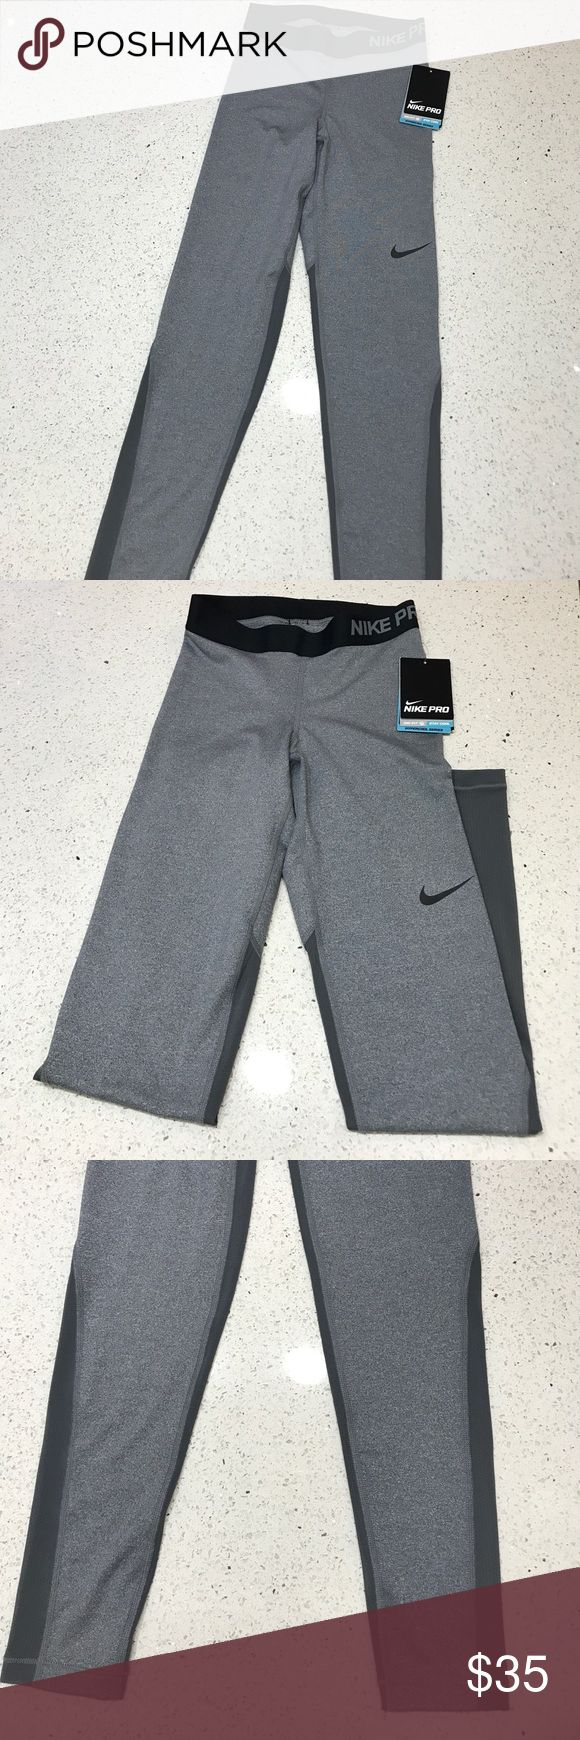 Nike Greg Dry Fit Leggings NWT - 100% Authentic NIKE tights, long ankle length. These stylish light grey, two toned tights dry fit cooling tights are what you need for a productive workout or casual day out! Nike Pants Leggings